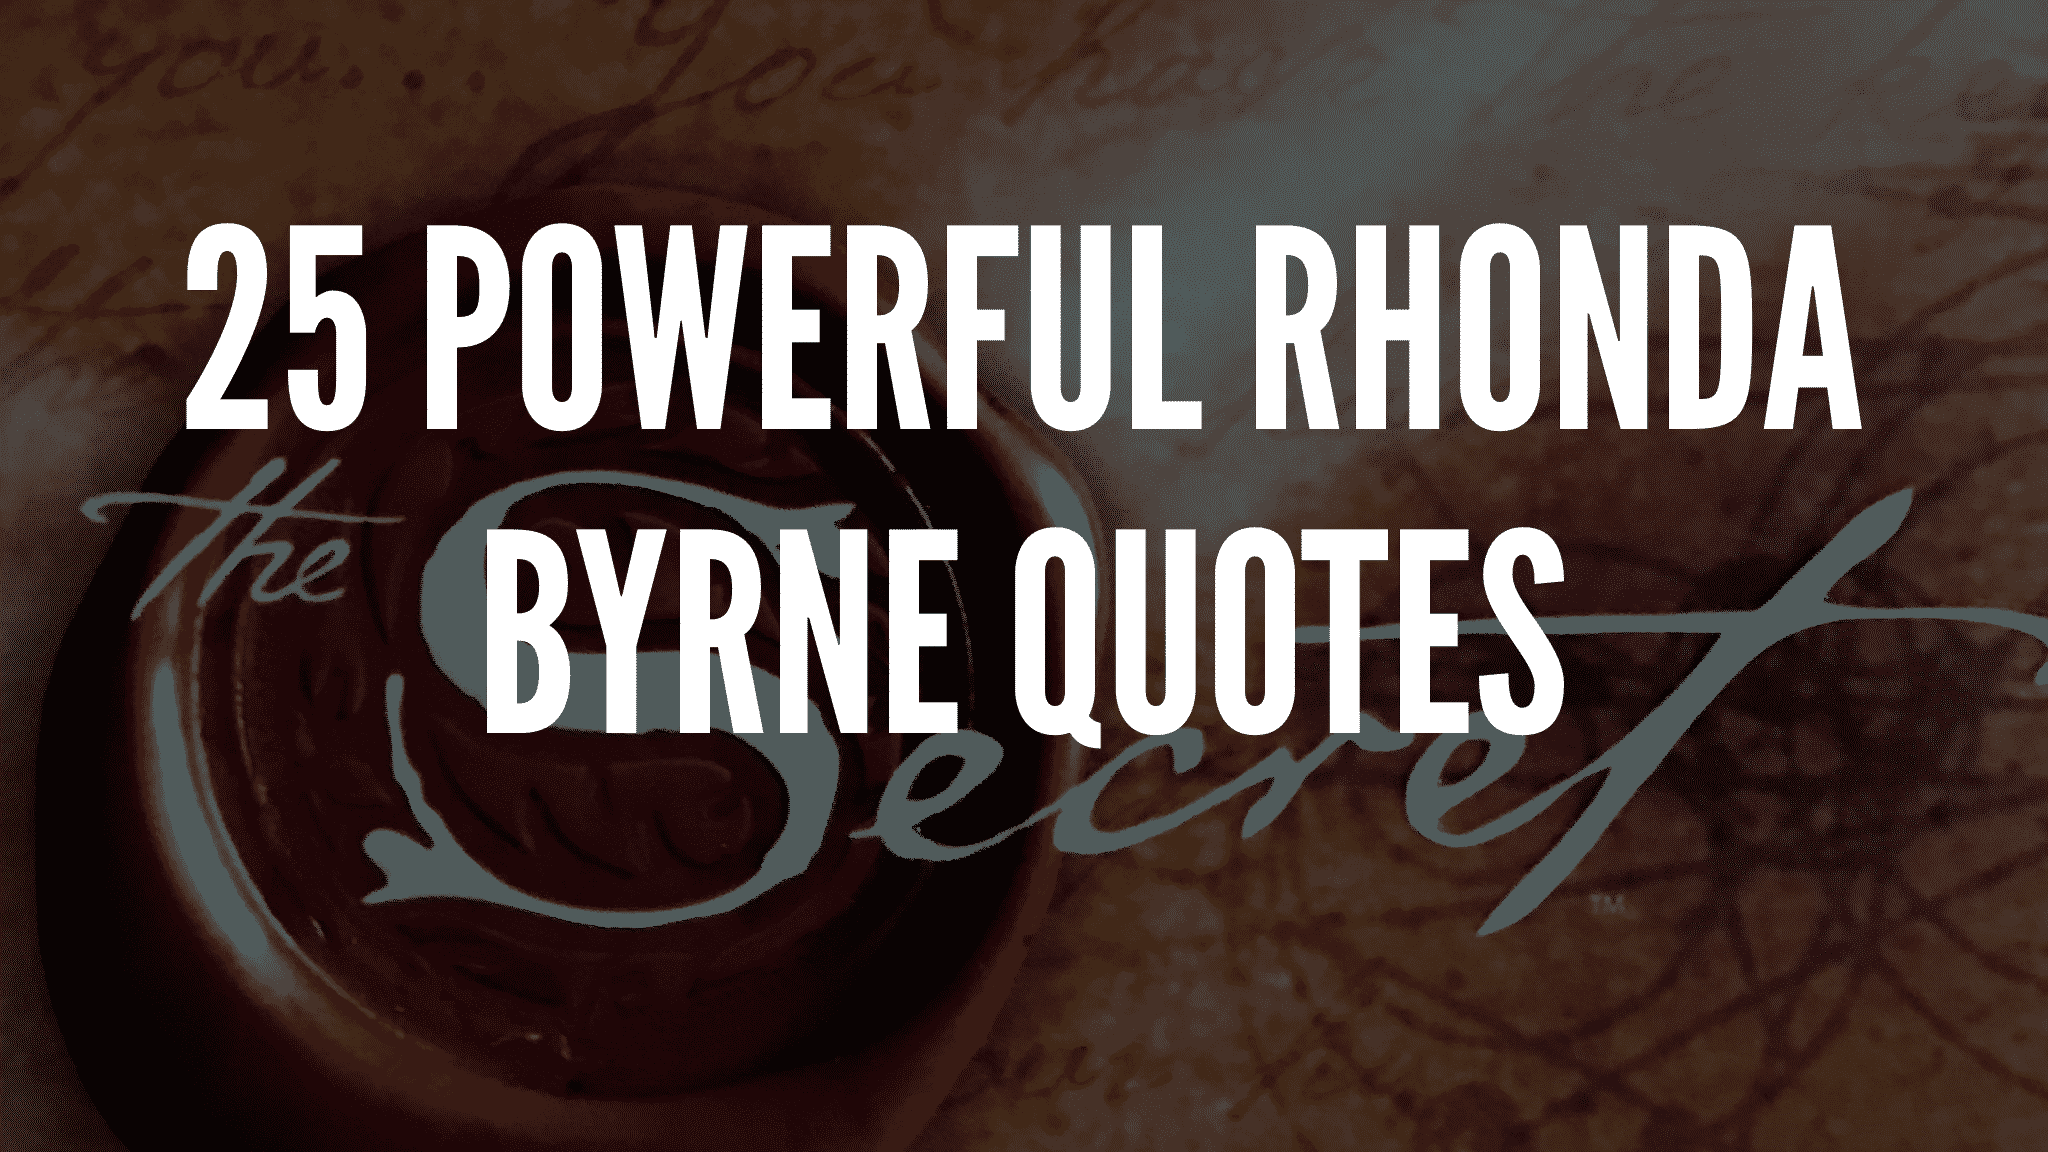 Powerful Rhonda Byrne Quotes